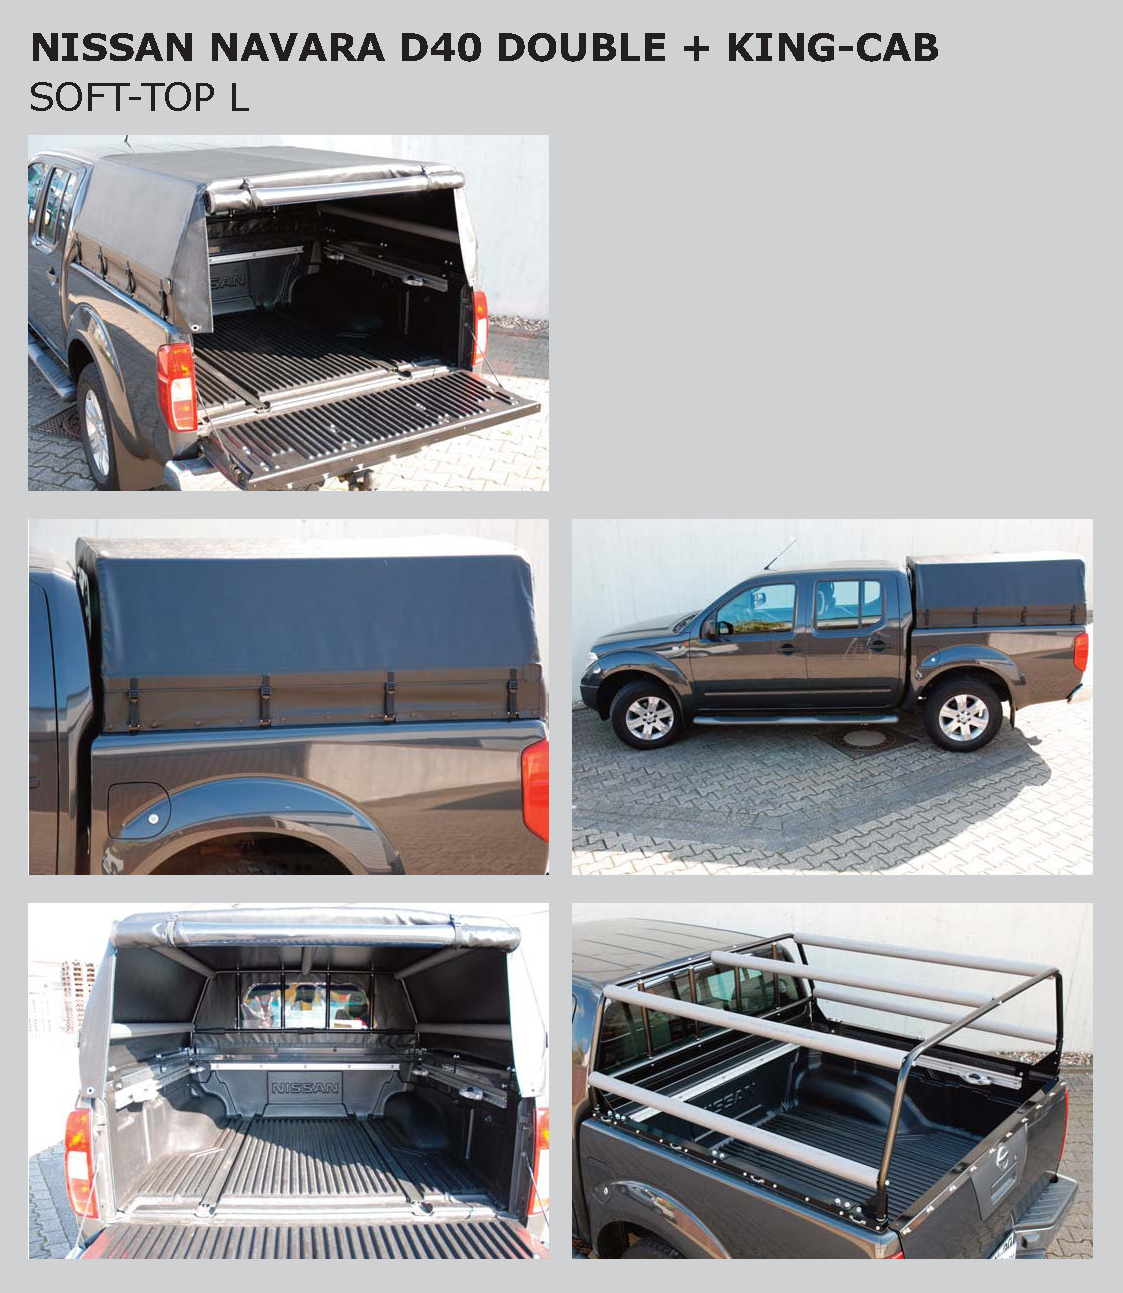 NISSAN_D40_NAVARA_DOUBLE_KING_CAB_Soft-Tops_Seite_3